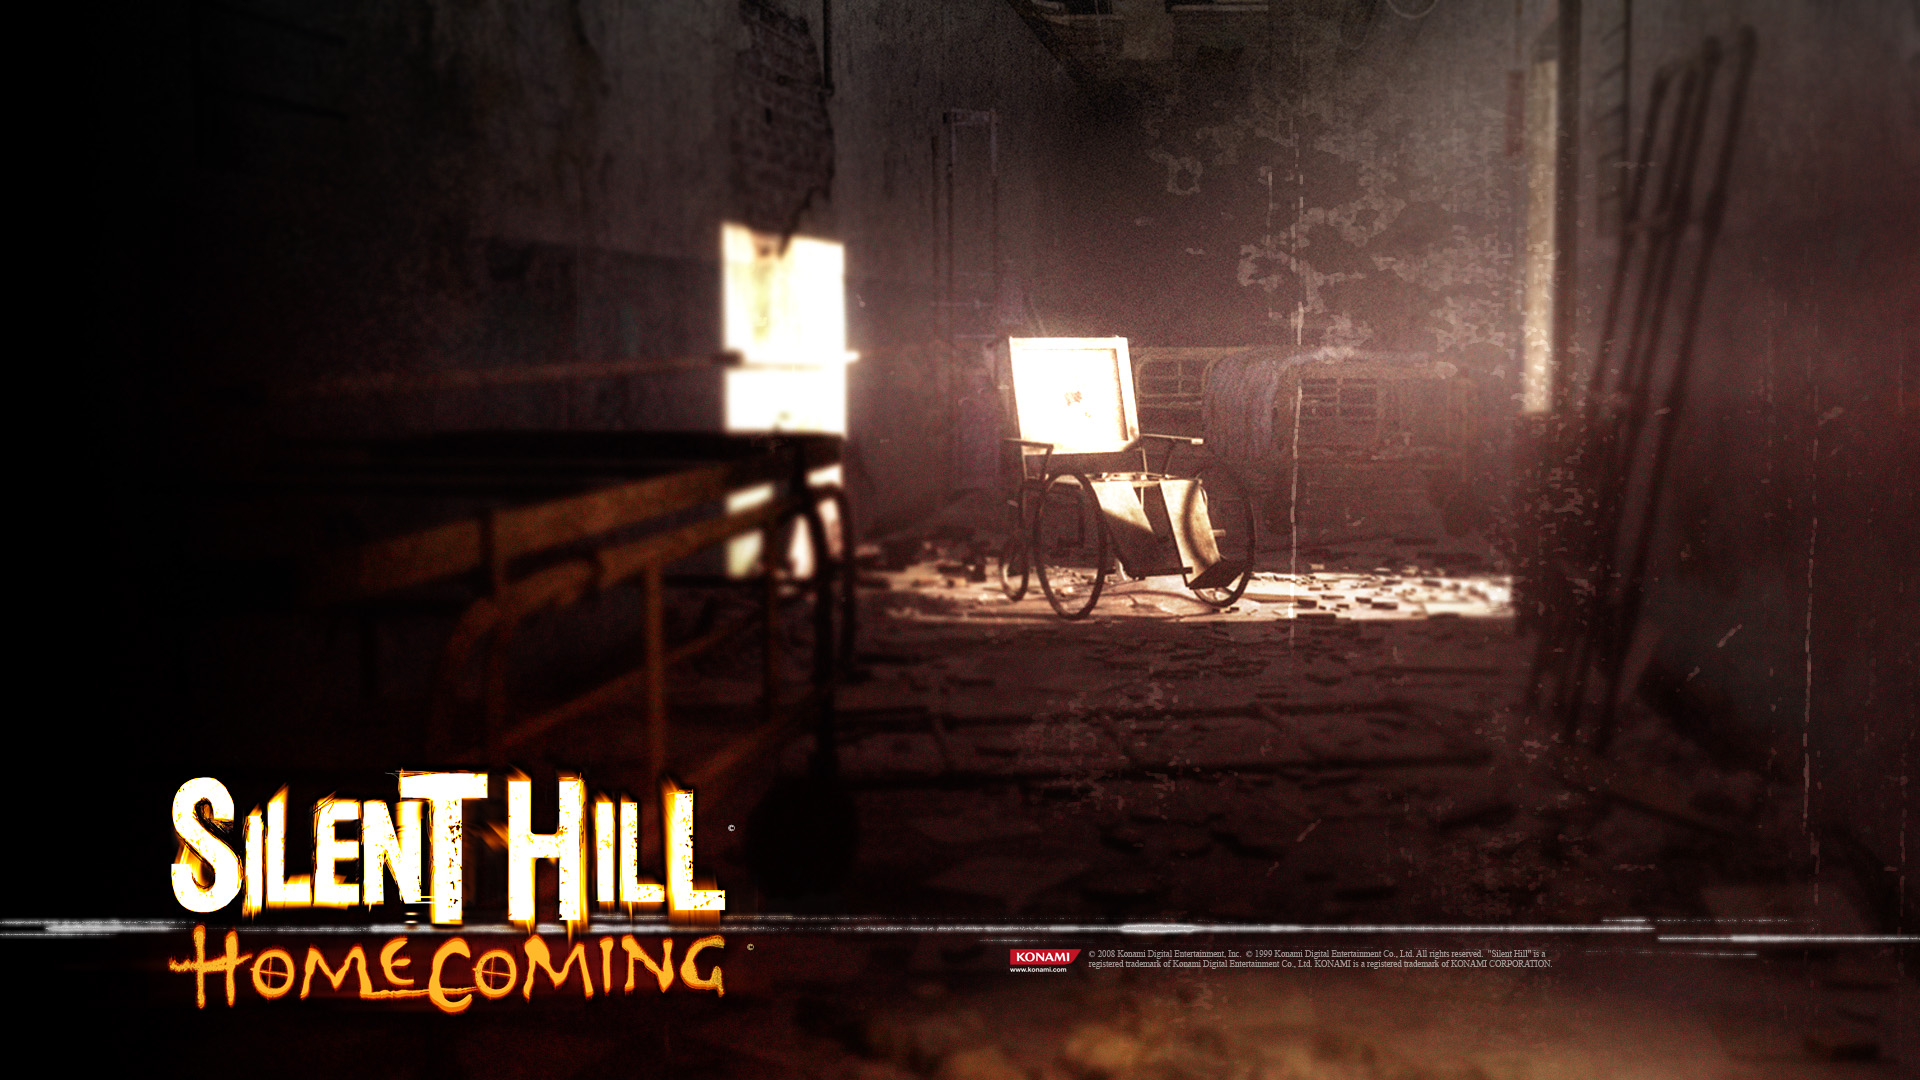 SilentHillHomecoming Wallpaper4 HD 1920x1080